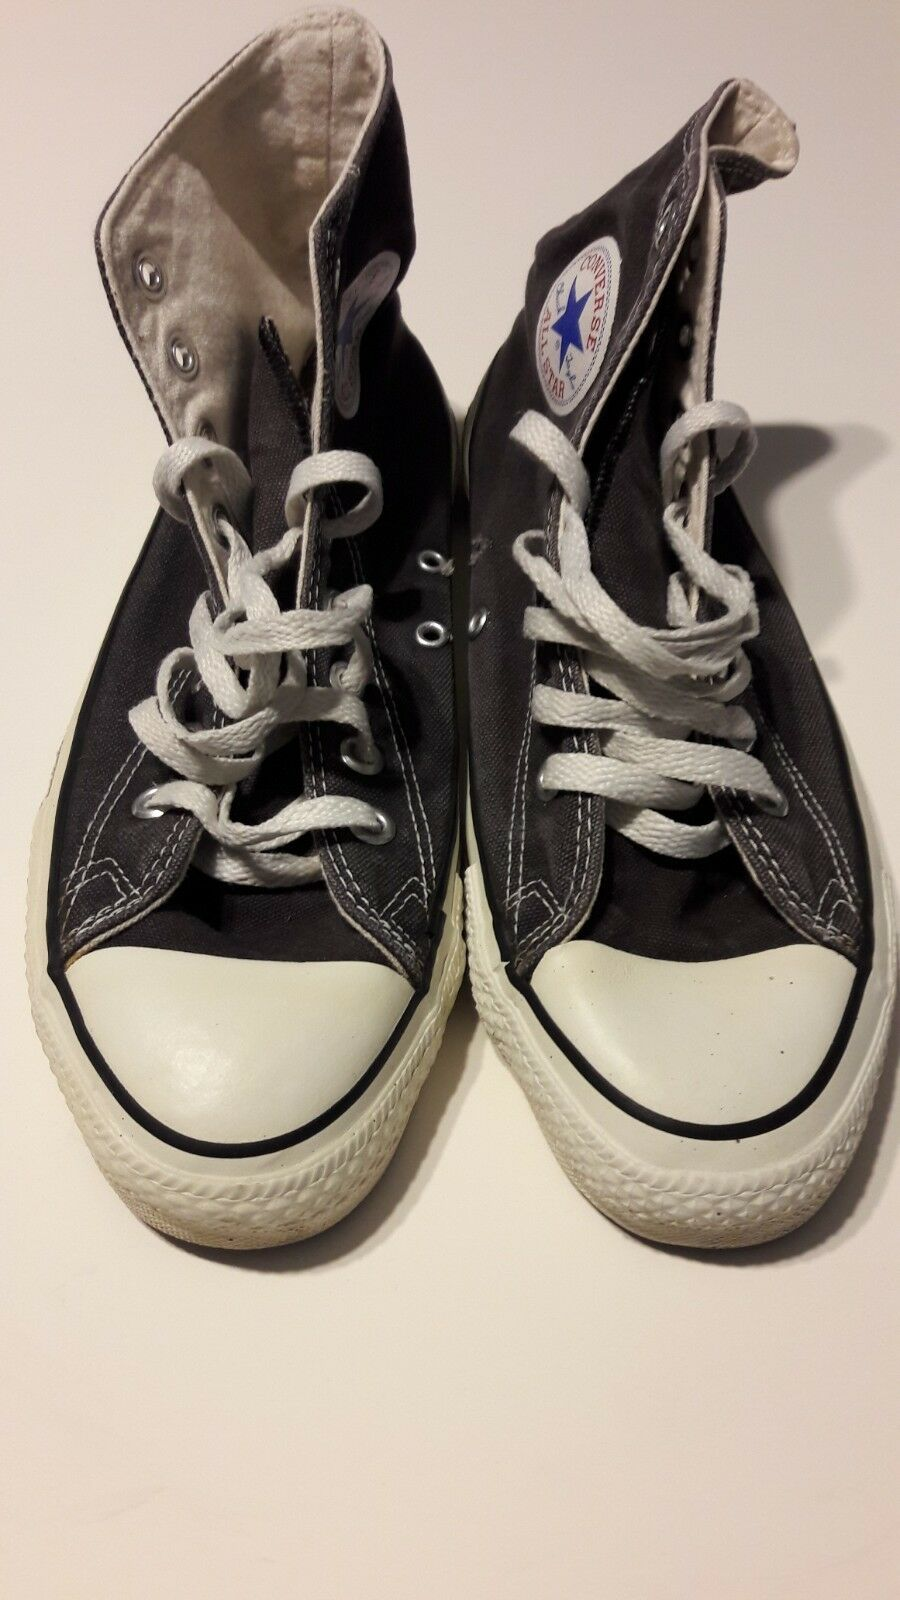 promo code 13f5d be92e VINTAGE CONVERSE ALL STAR CHUCK TAYLOR BLACK HIGH HIGH HIGH TOP SIZE 9M  MADE IN USA